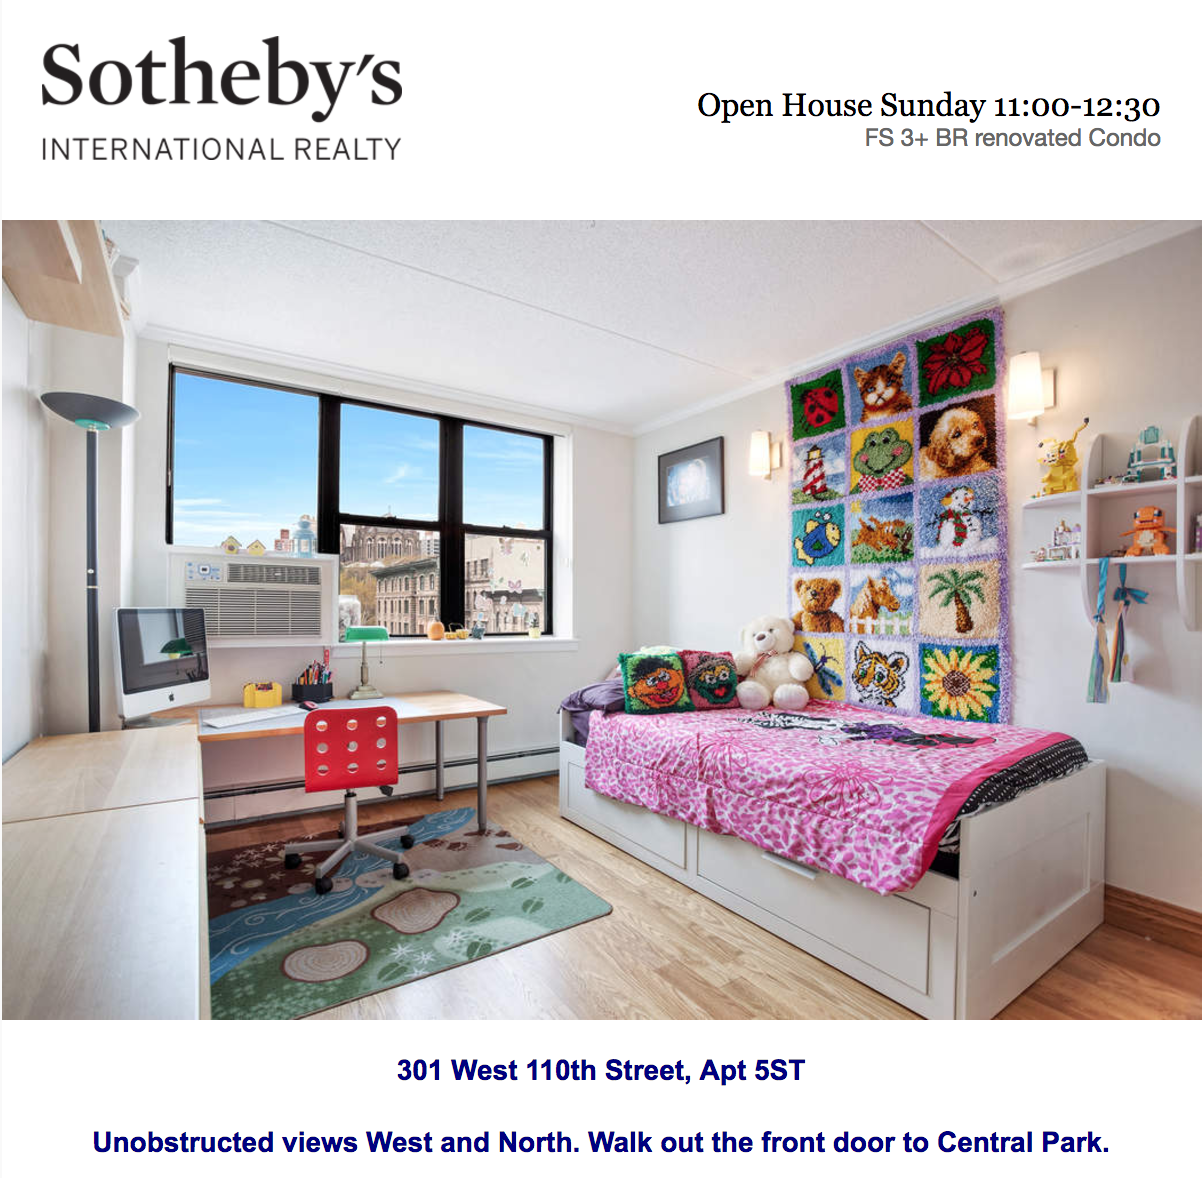 Sotheby's real estate newsletter